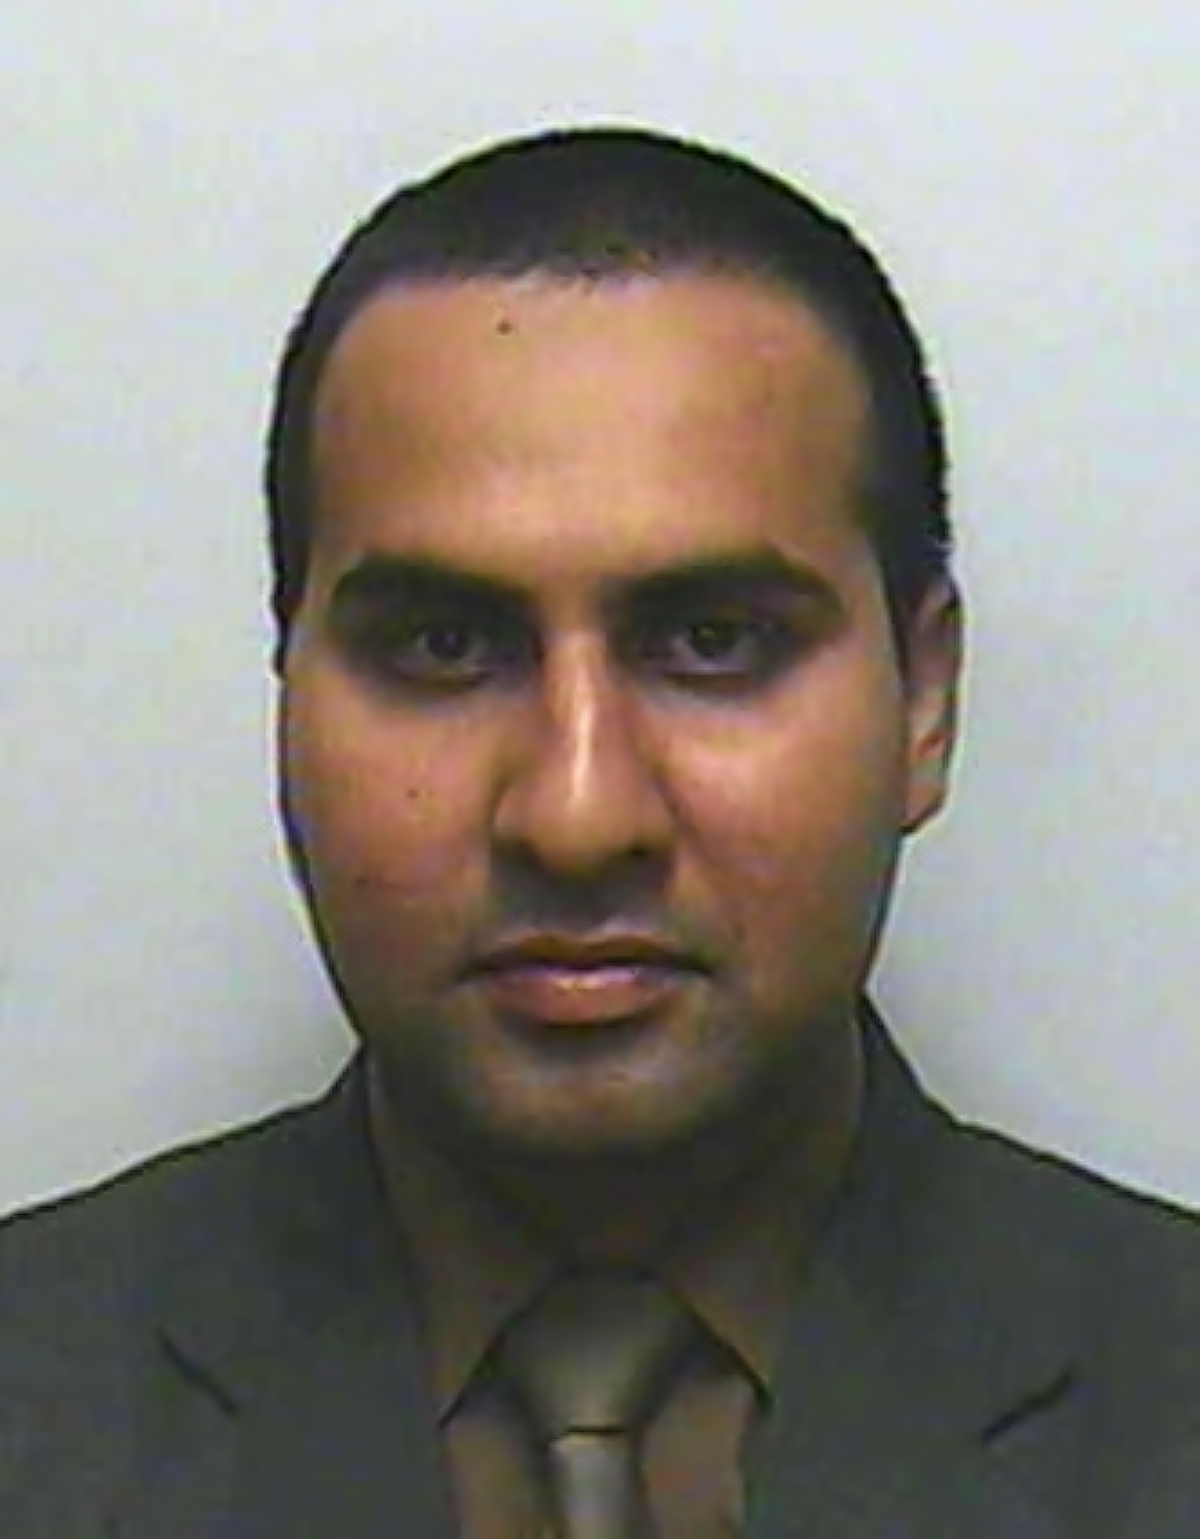 Fugitive fraudster from West Watford landed with a £5 million bill for his part in tax scam